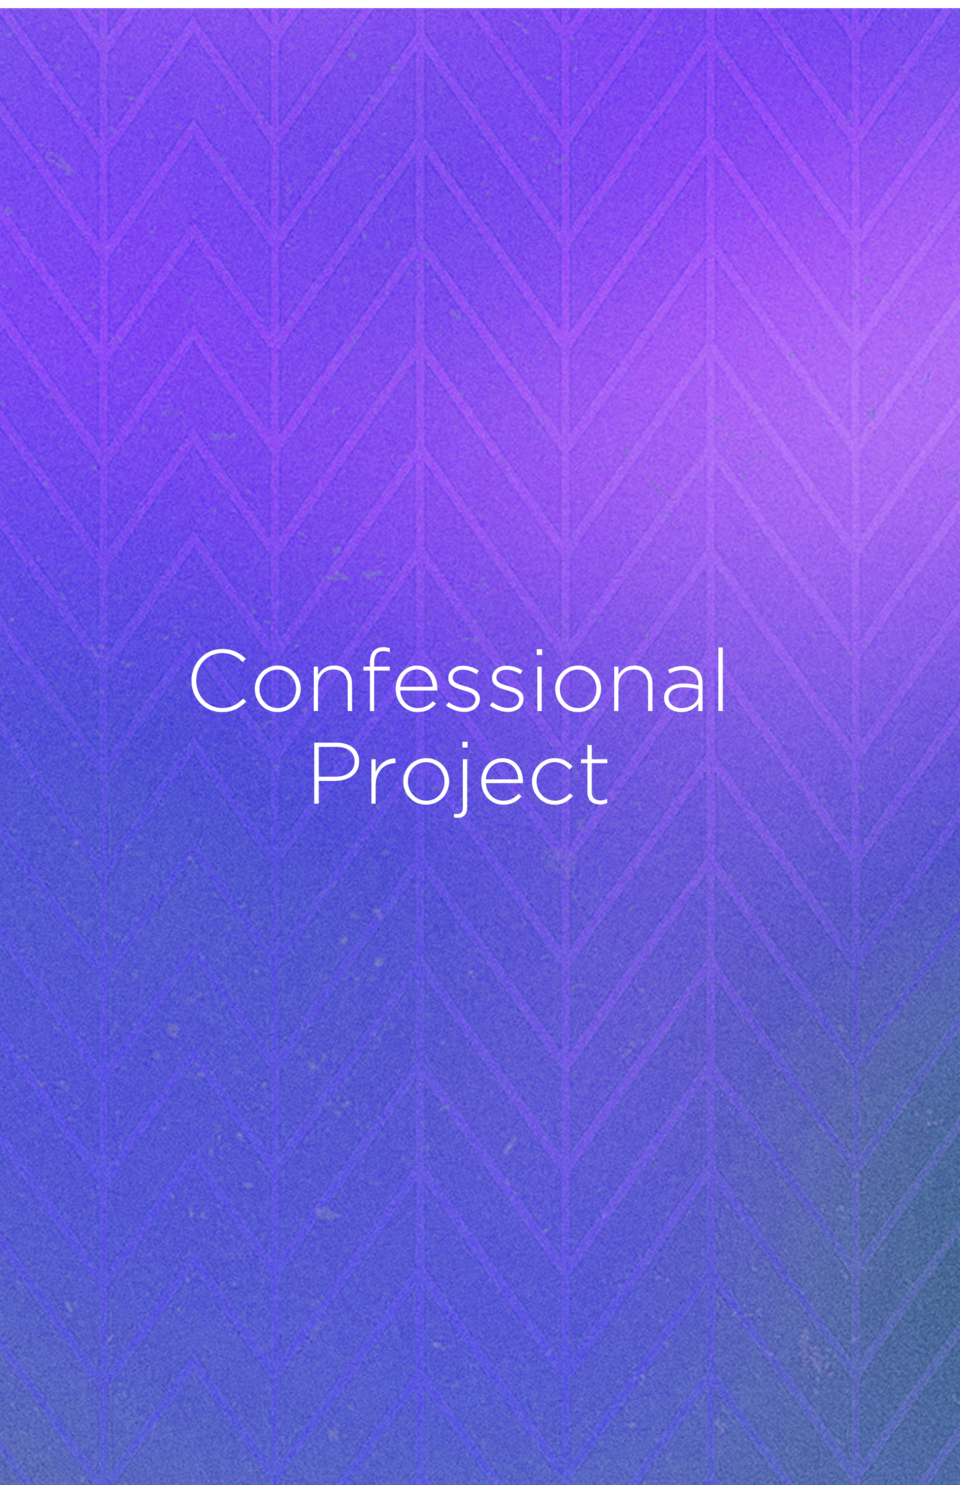 CONFESSIONAL PROJECT The purpose of this project is to help prepare your heart and mind for God   s work in the world. One...